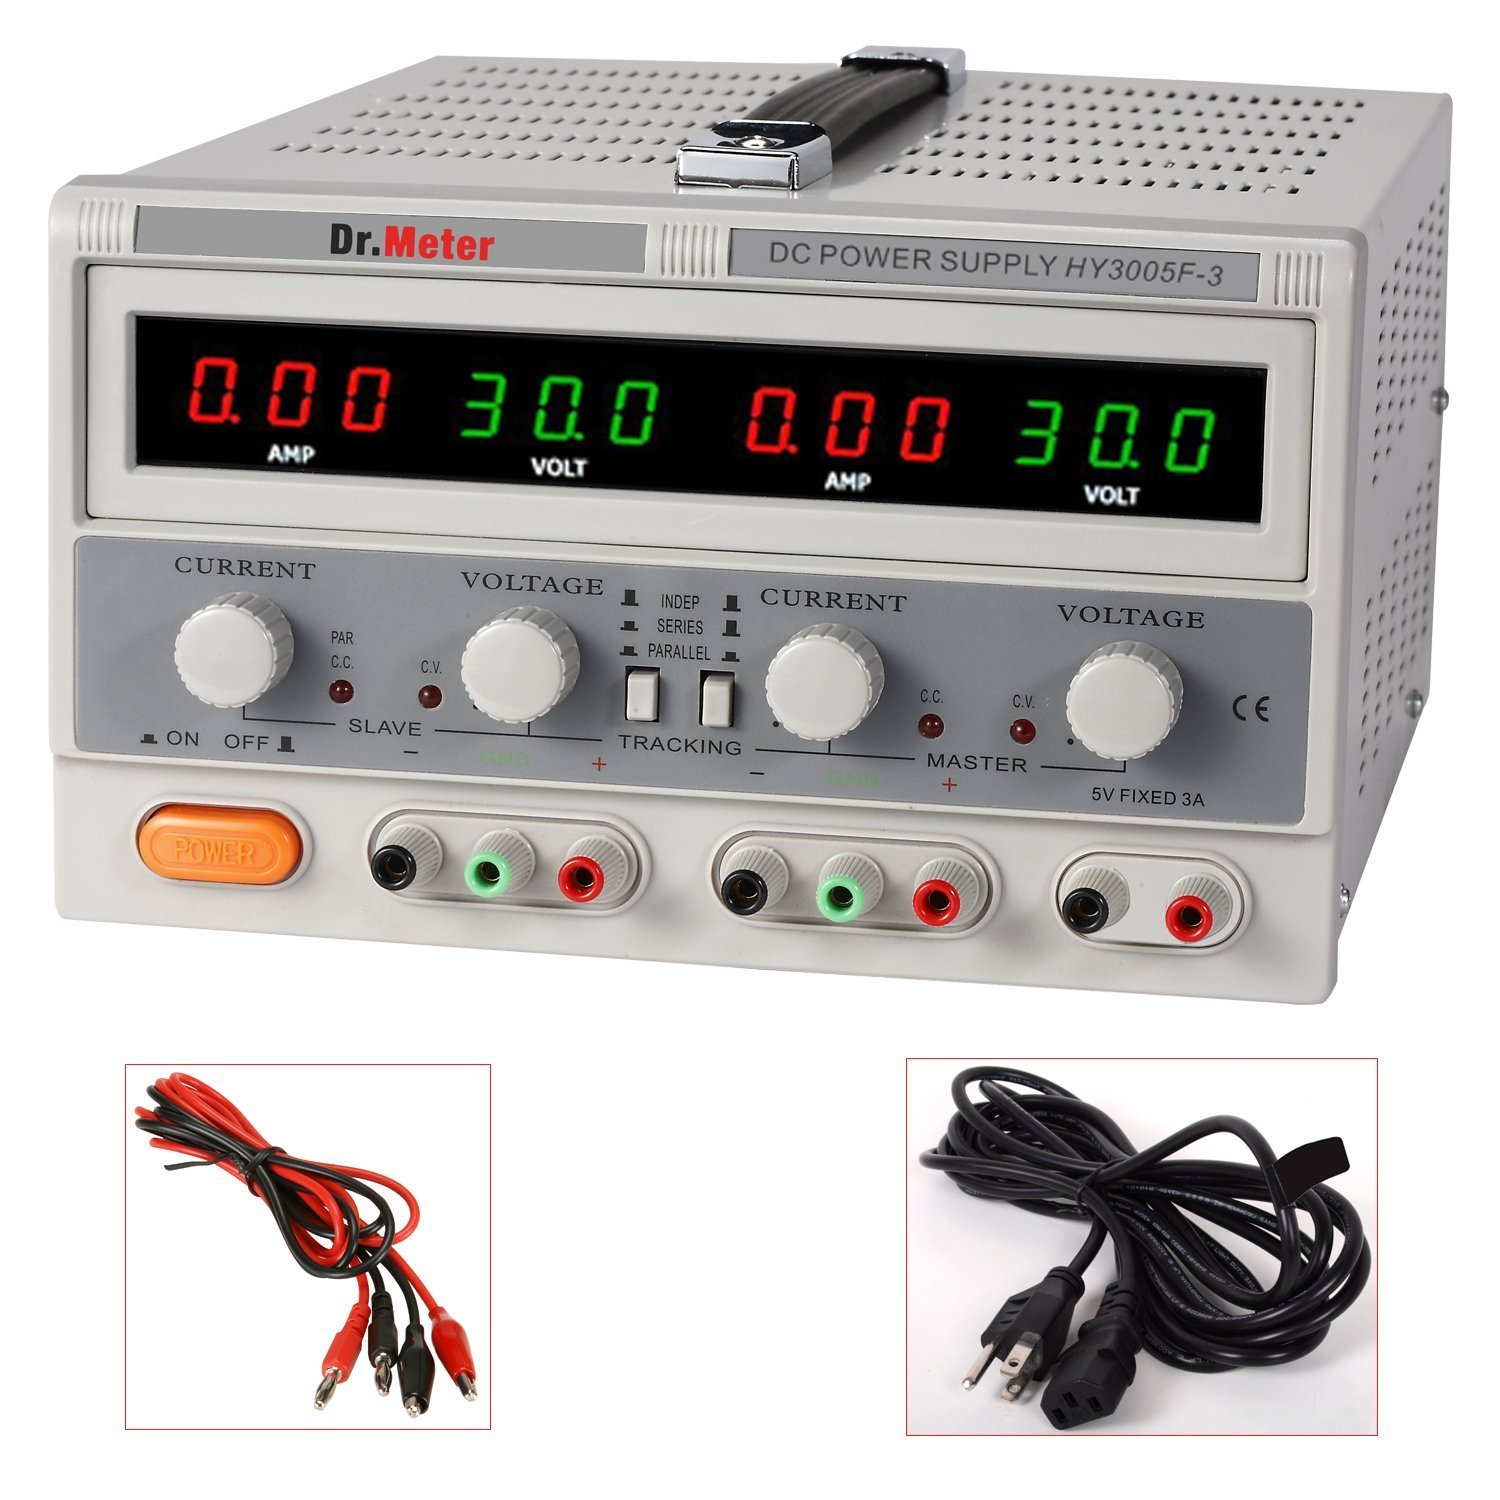 Drmeter Hy3005f 3 Variable Triple Linear Dc Power Supply 30v 5a 0 30v0 2a Adjustable Voltage And Current Regulator With Alligator Cable Cord Distribution Units Industrial